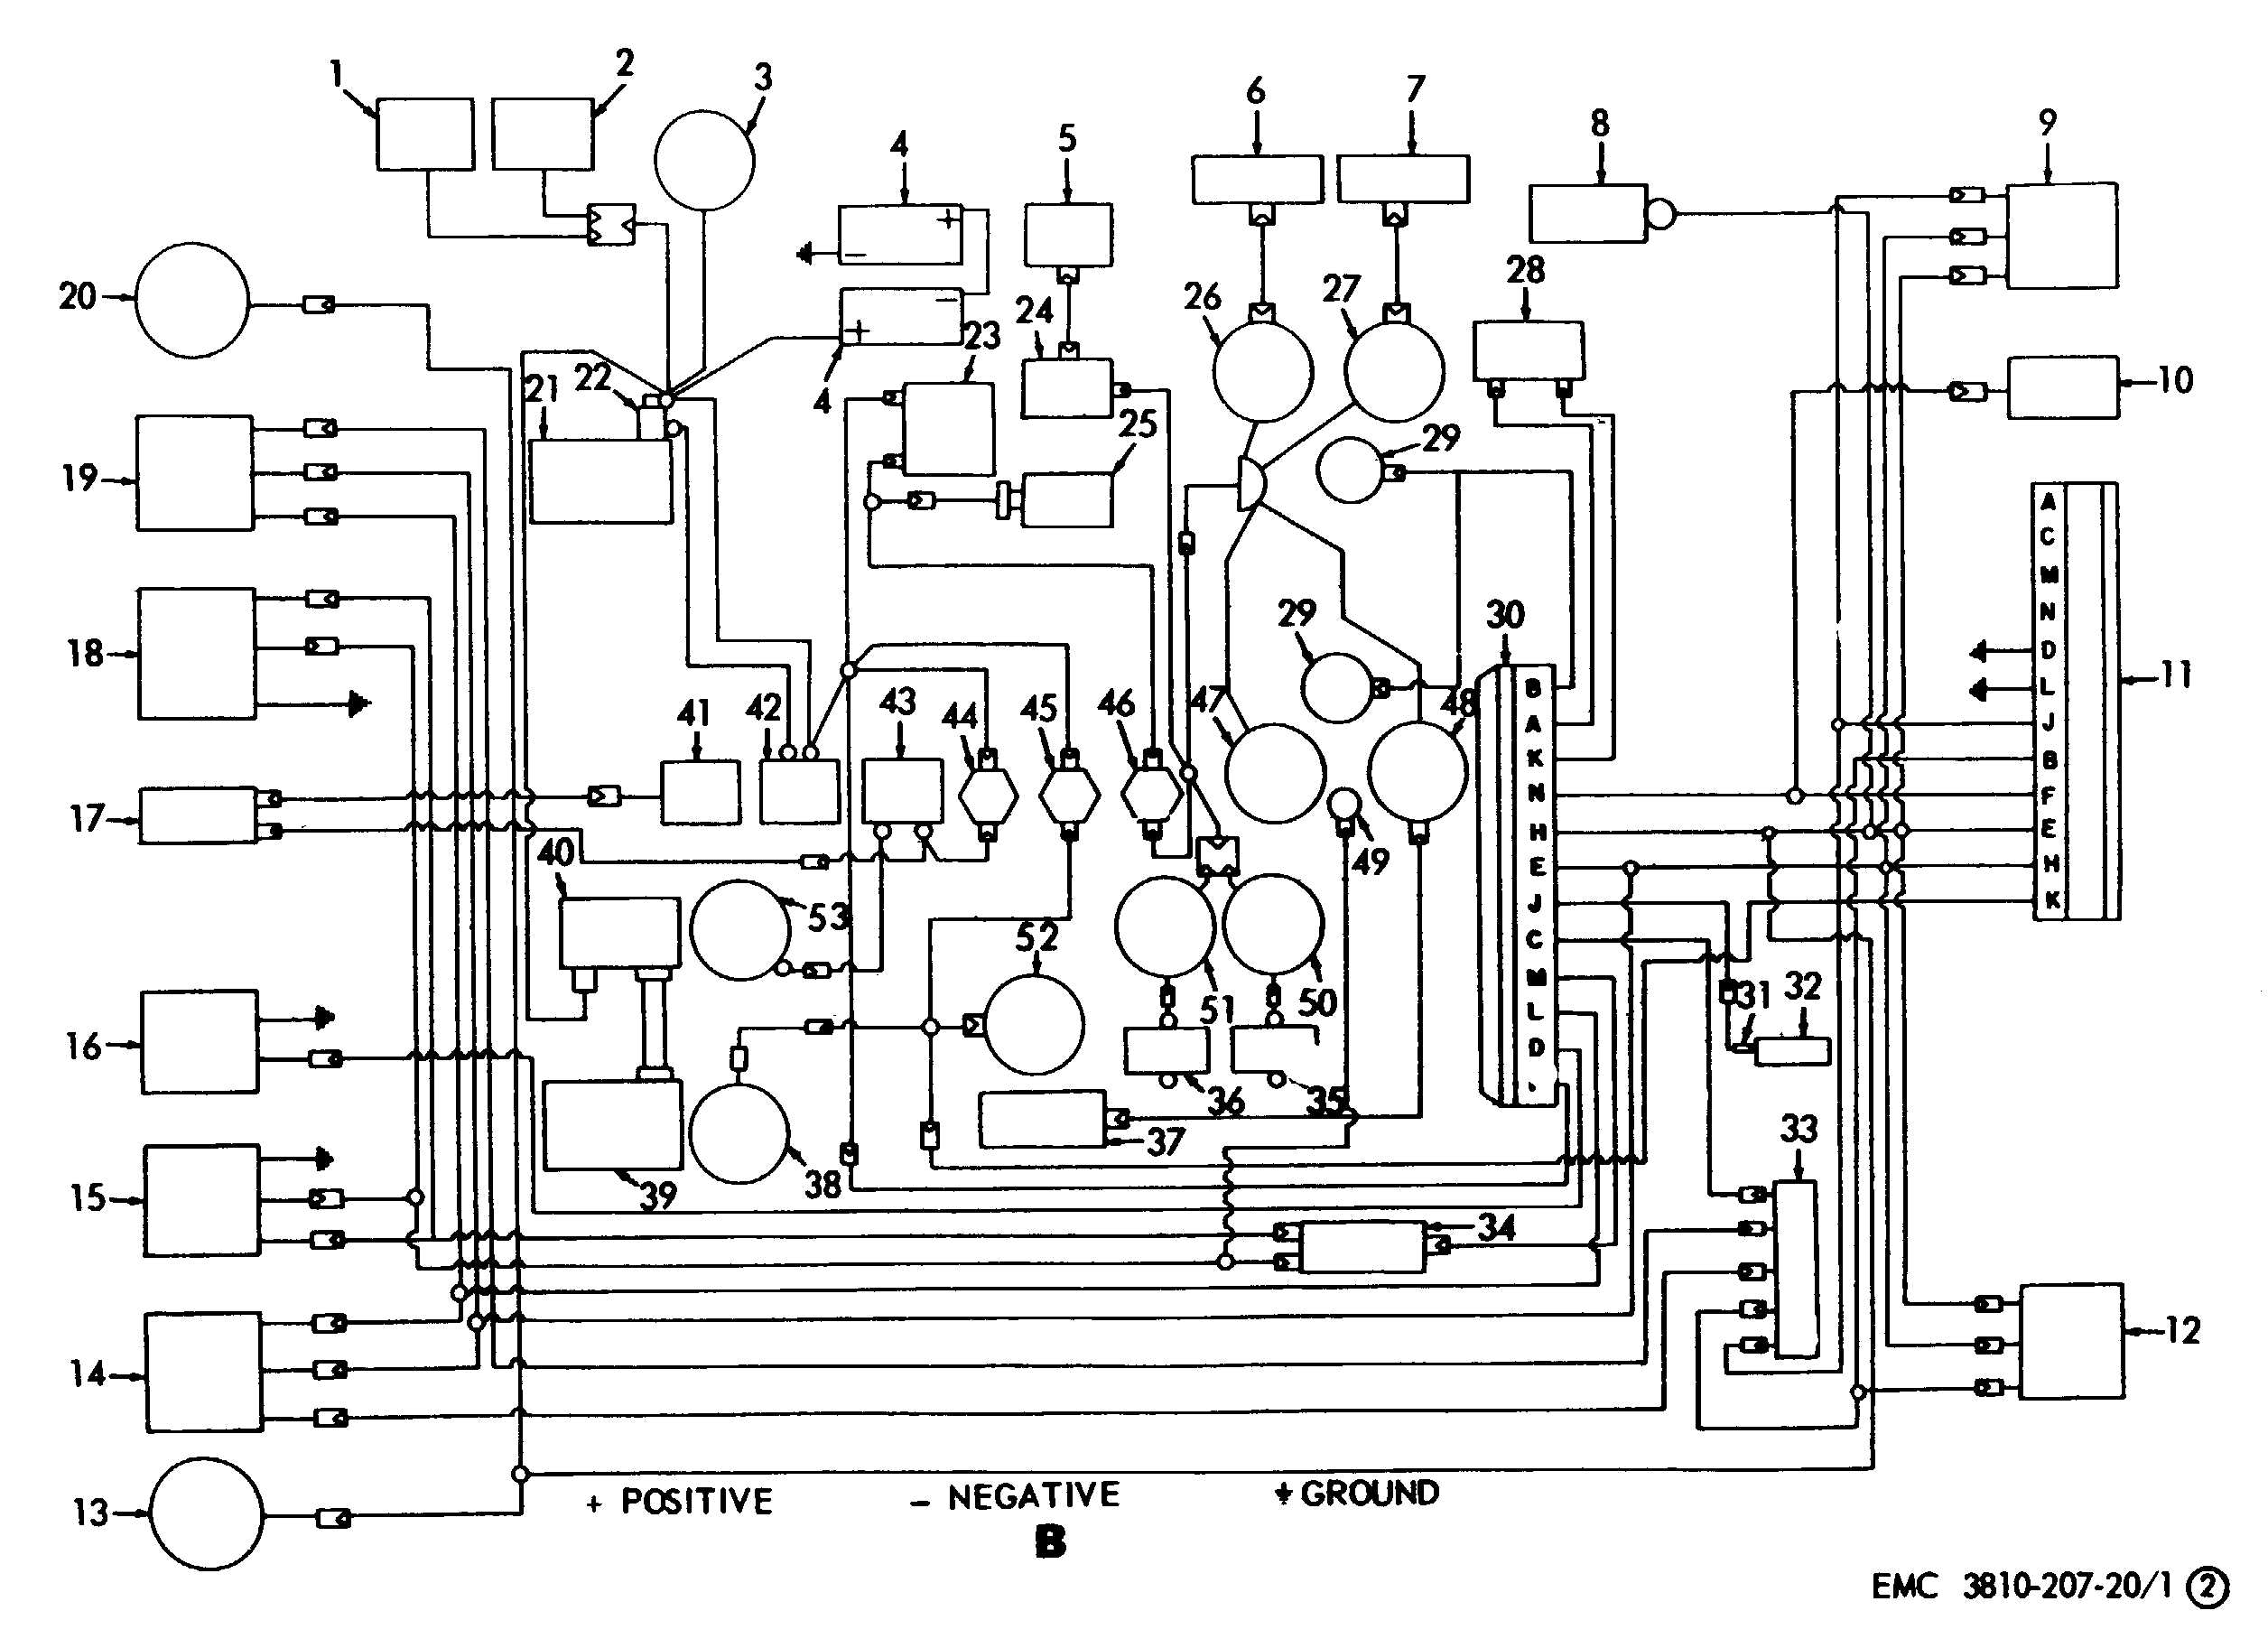 carrier 30ra 200 wiring diagram apexi pen turbo timer figure 1 crane shovel and wire diagrams cont